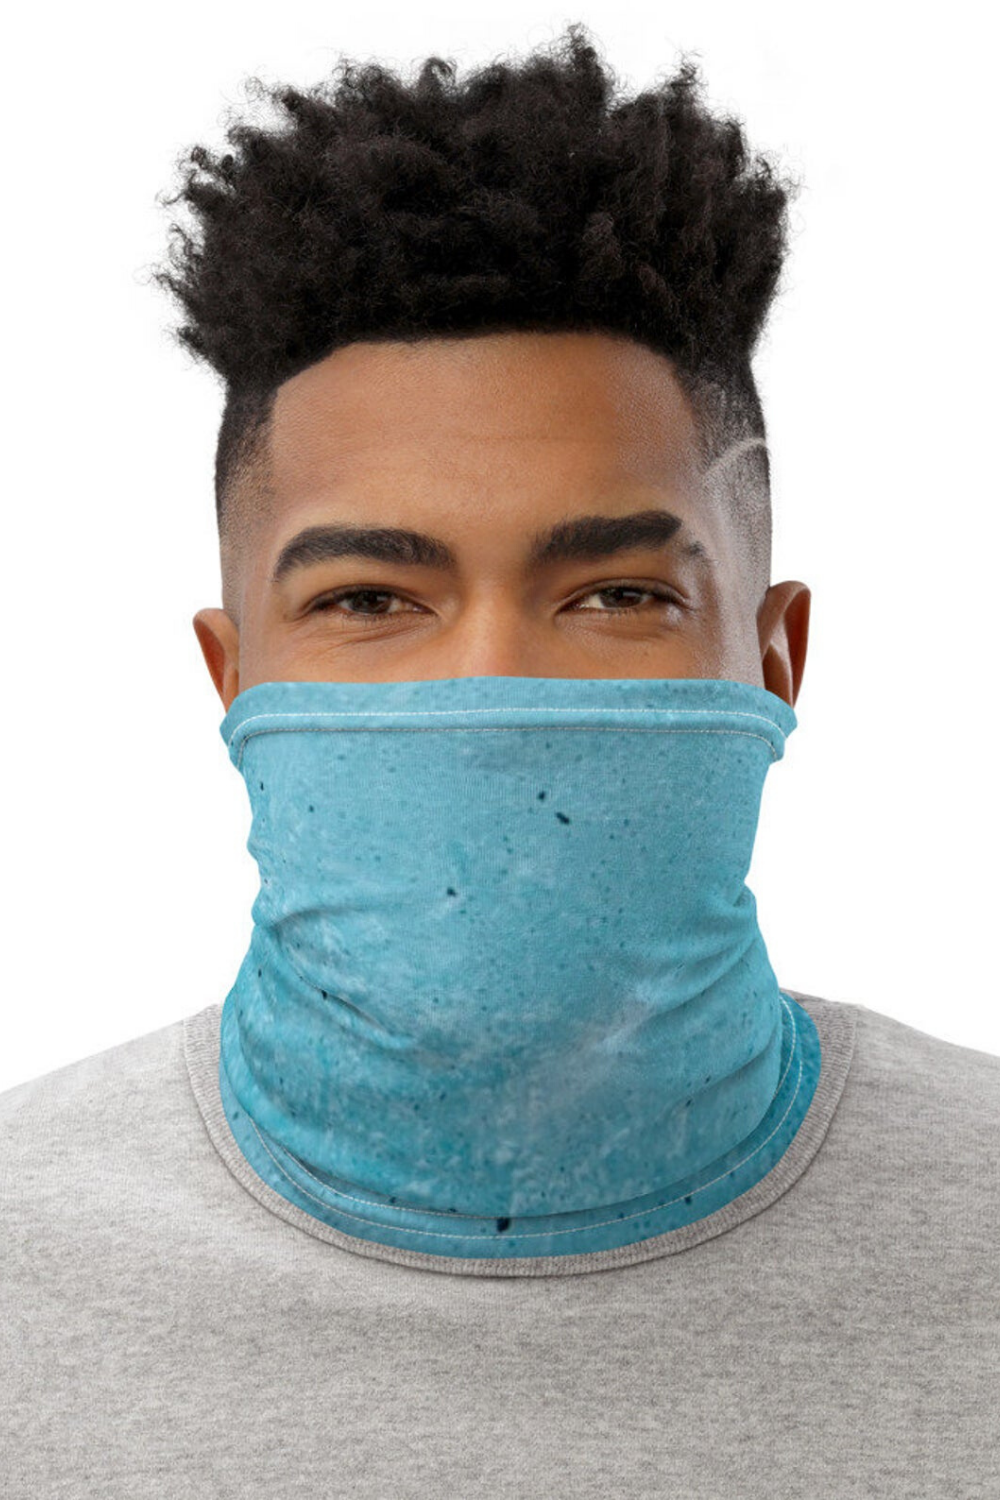 Triangle Geometric Abstraction Neck Gaiter Warmer Windproof Mask Balaclava Face Mask Sports Mask For Outdoor Men And Women Free UV Personalized